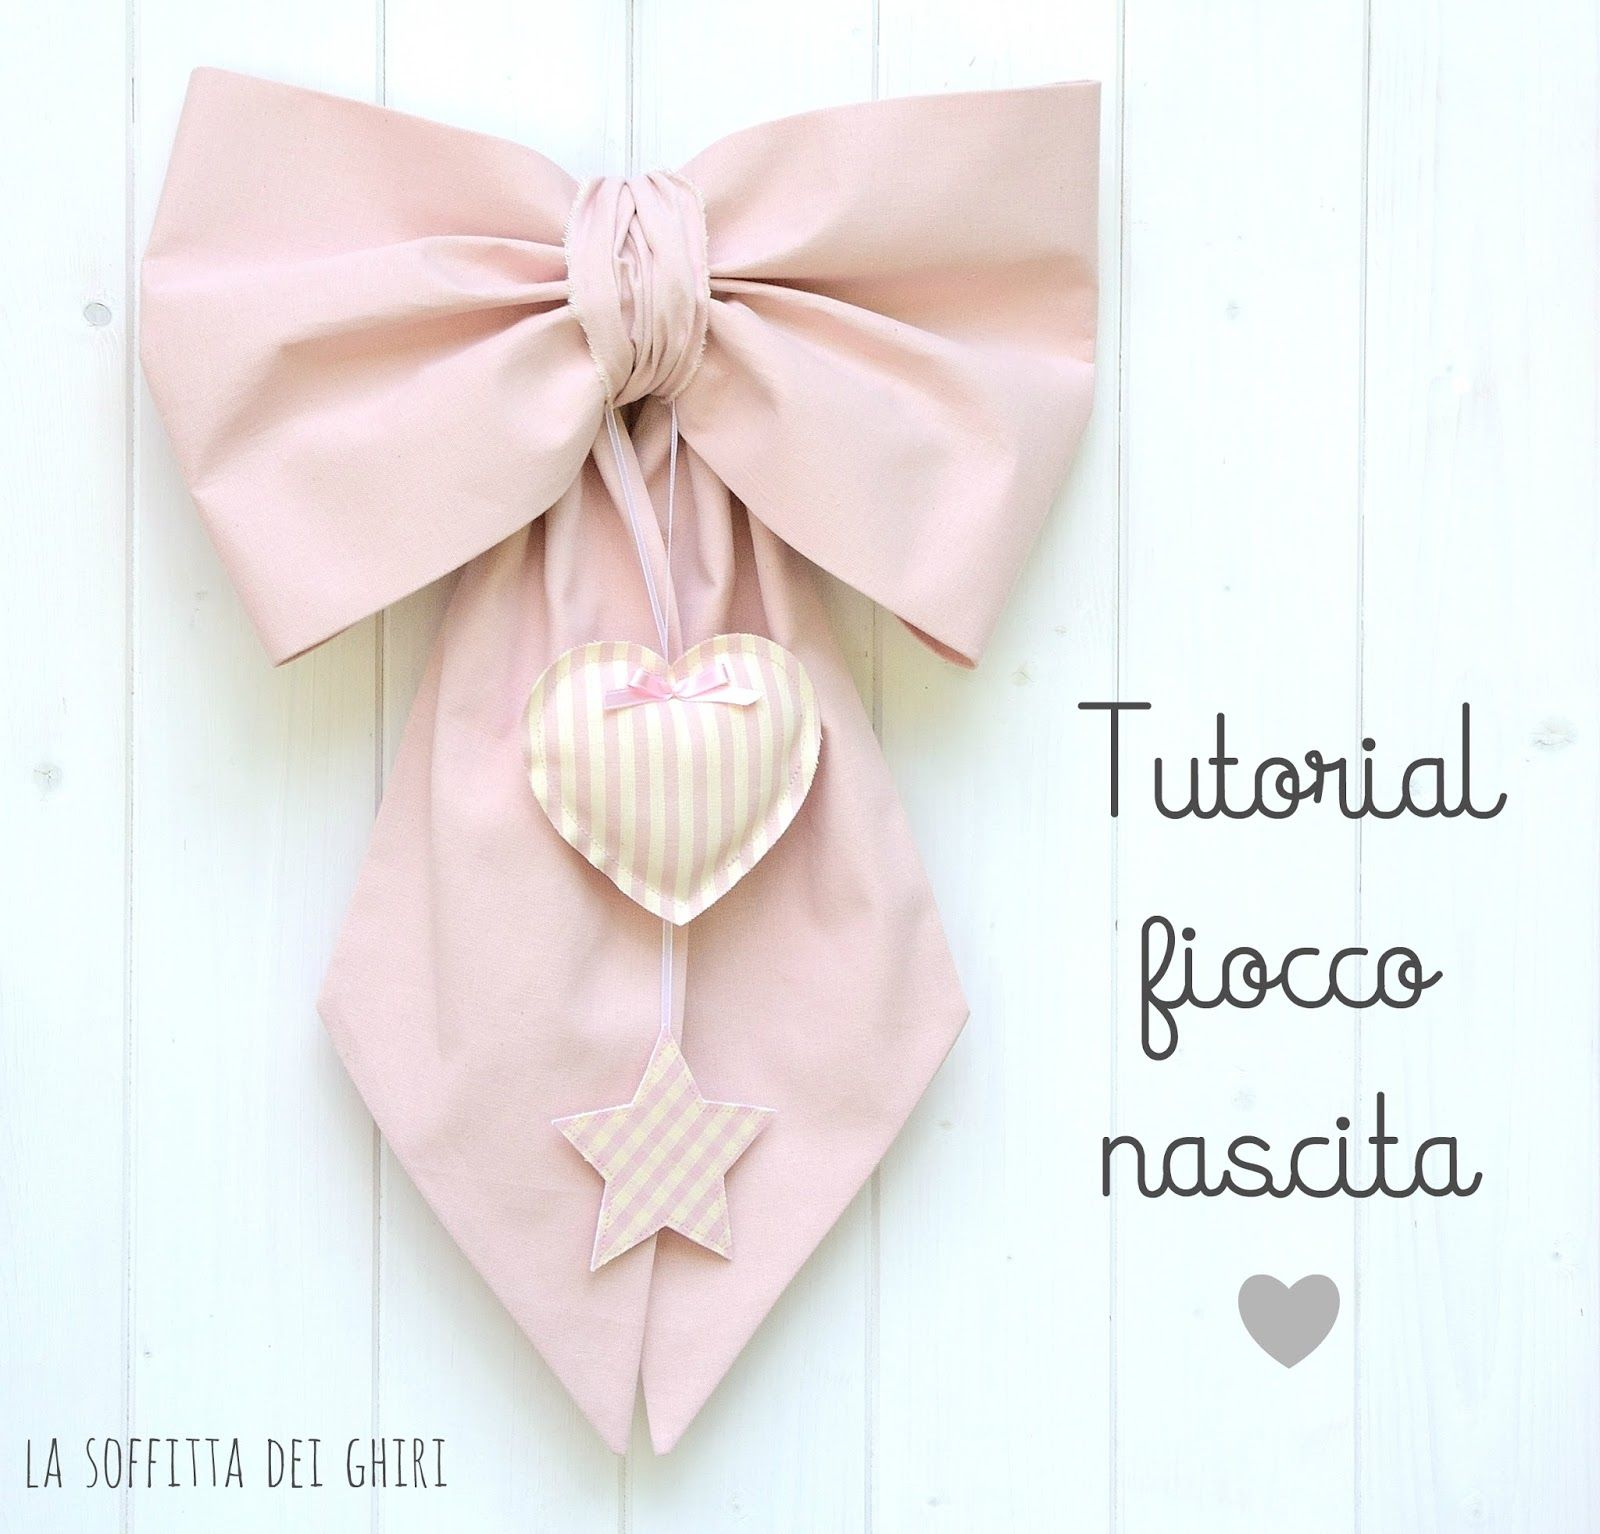 Tutorial fiocco nascita tutorial fiocchi neonato for Tutorial fermaporta di stoffa